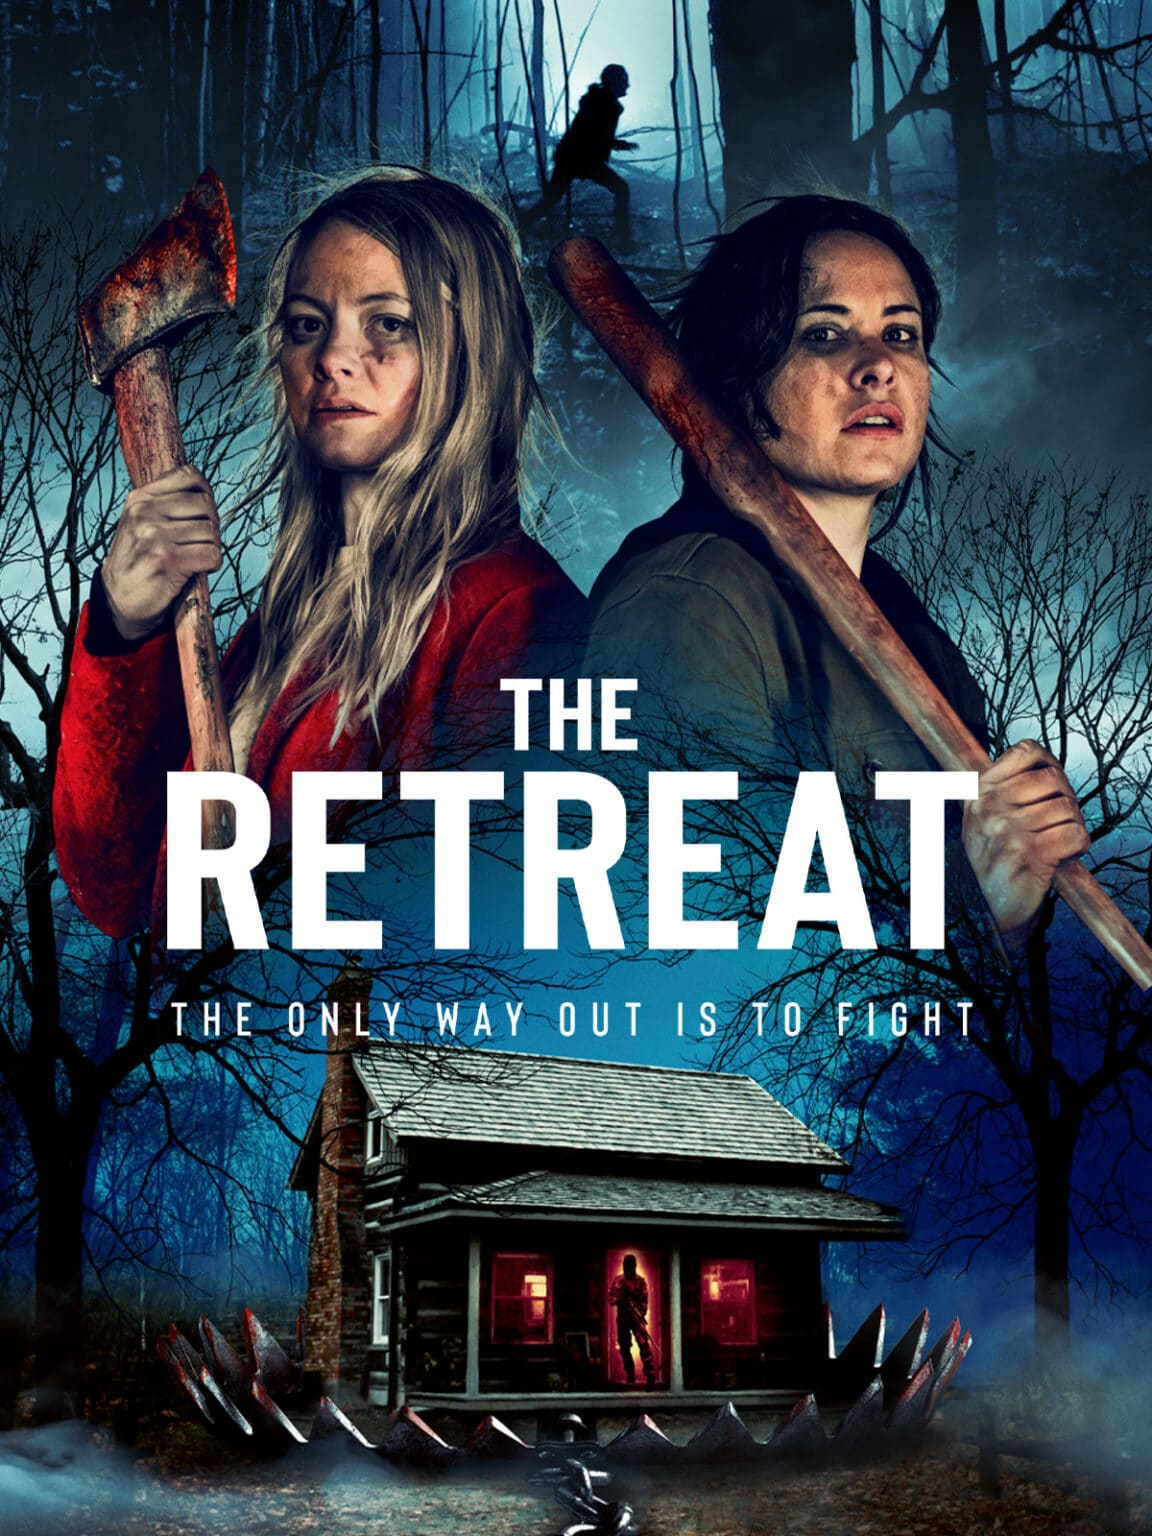 The Retreat – Teaser Poster